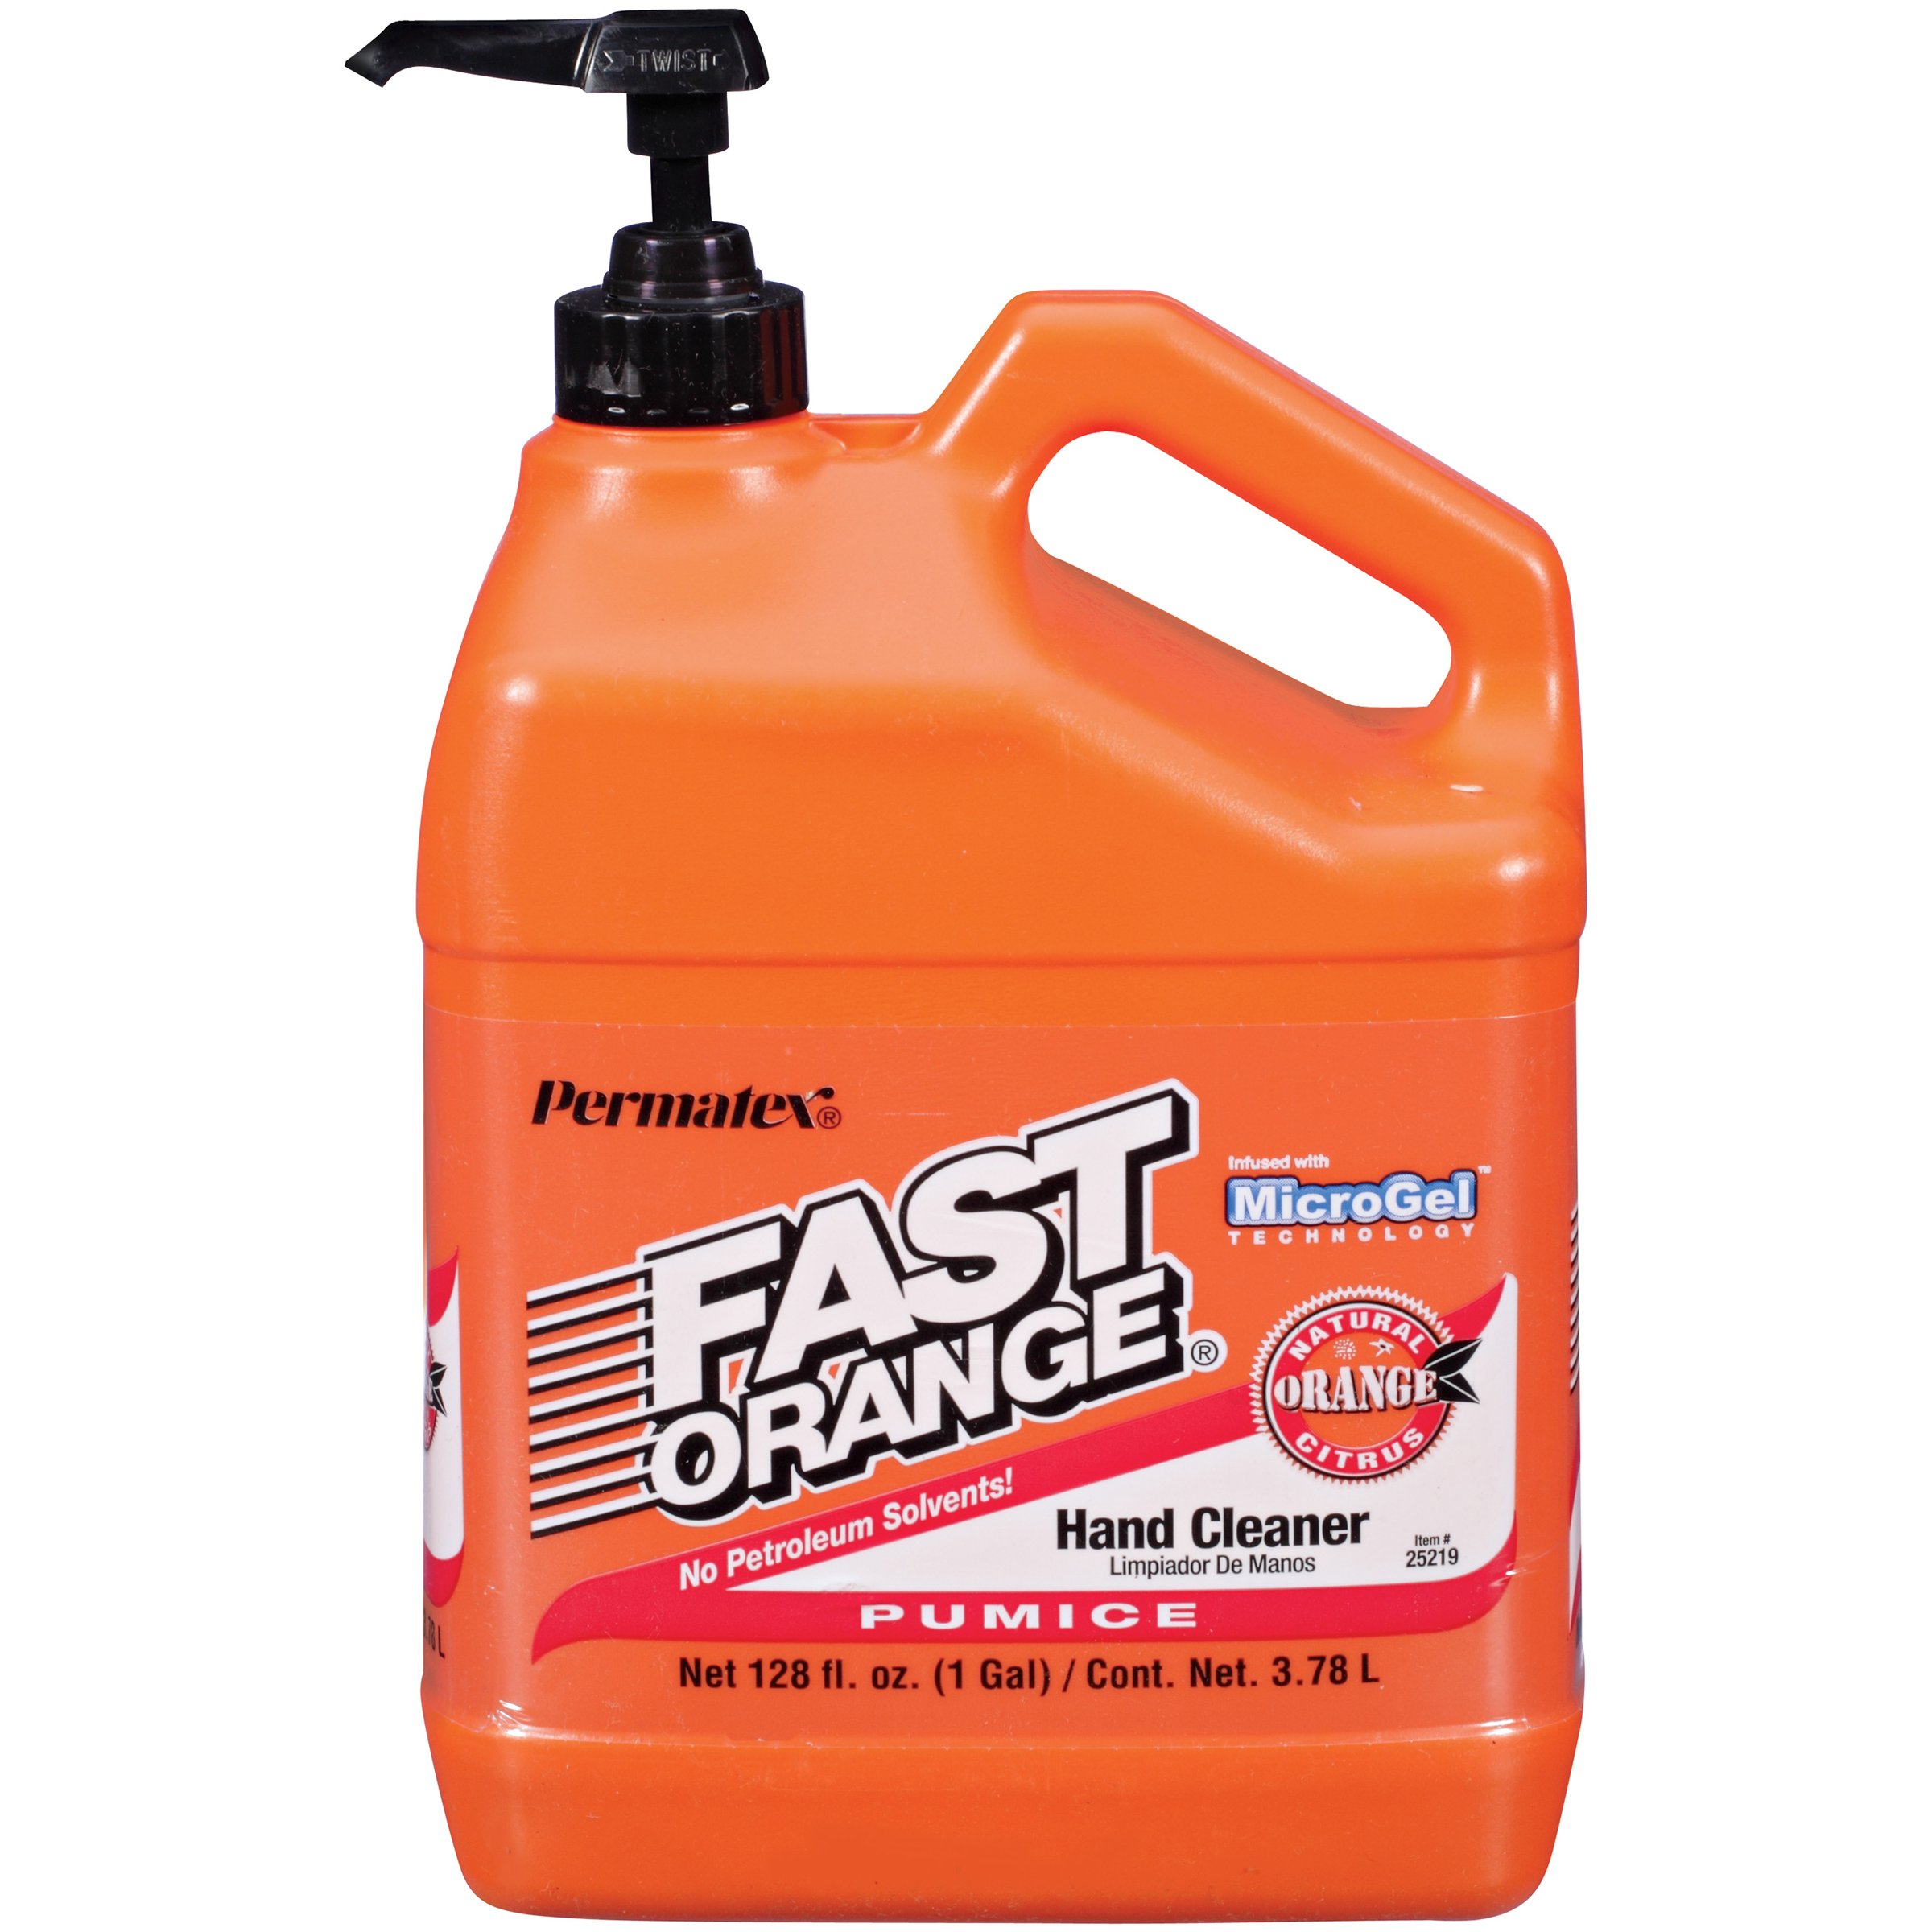 Permatex 25219 Fast Orange Pumice Lotion Hand Cleaner with Pump, 1 Gallon product image